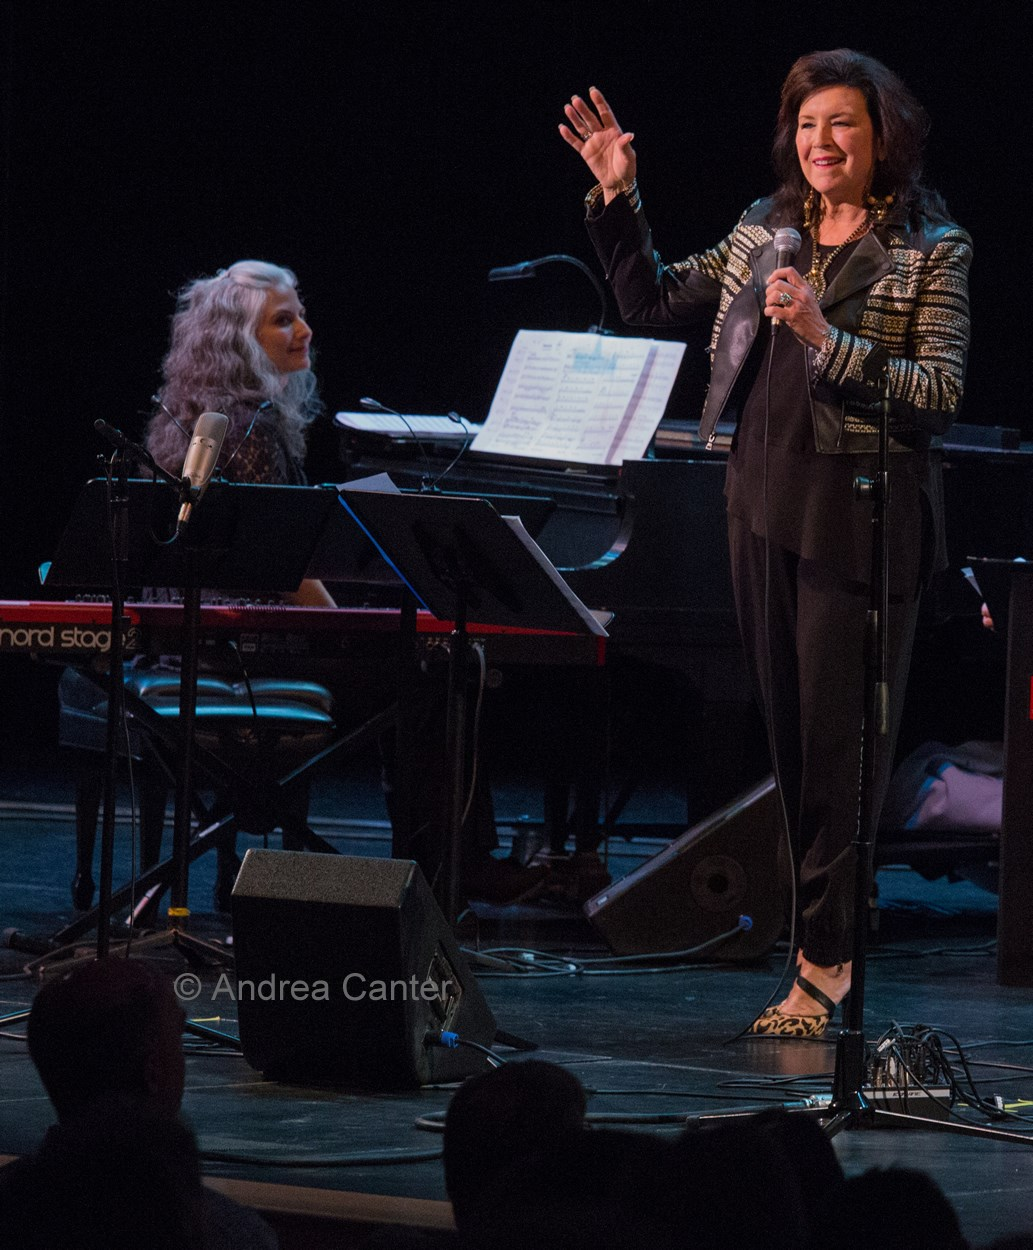 Pianist Mary Louise Knutson and vocalist Patty Peterson, Minneapolis, MN.